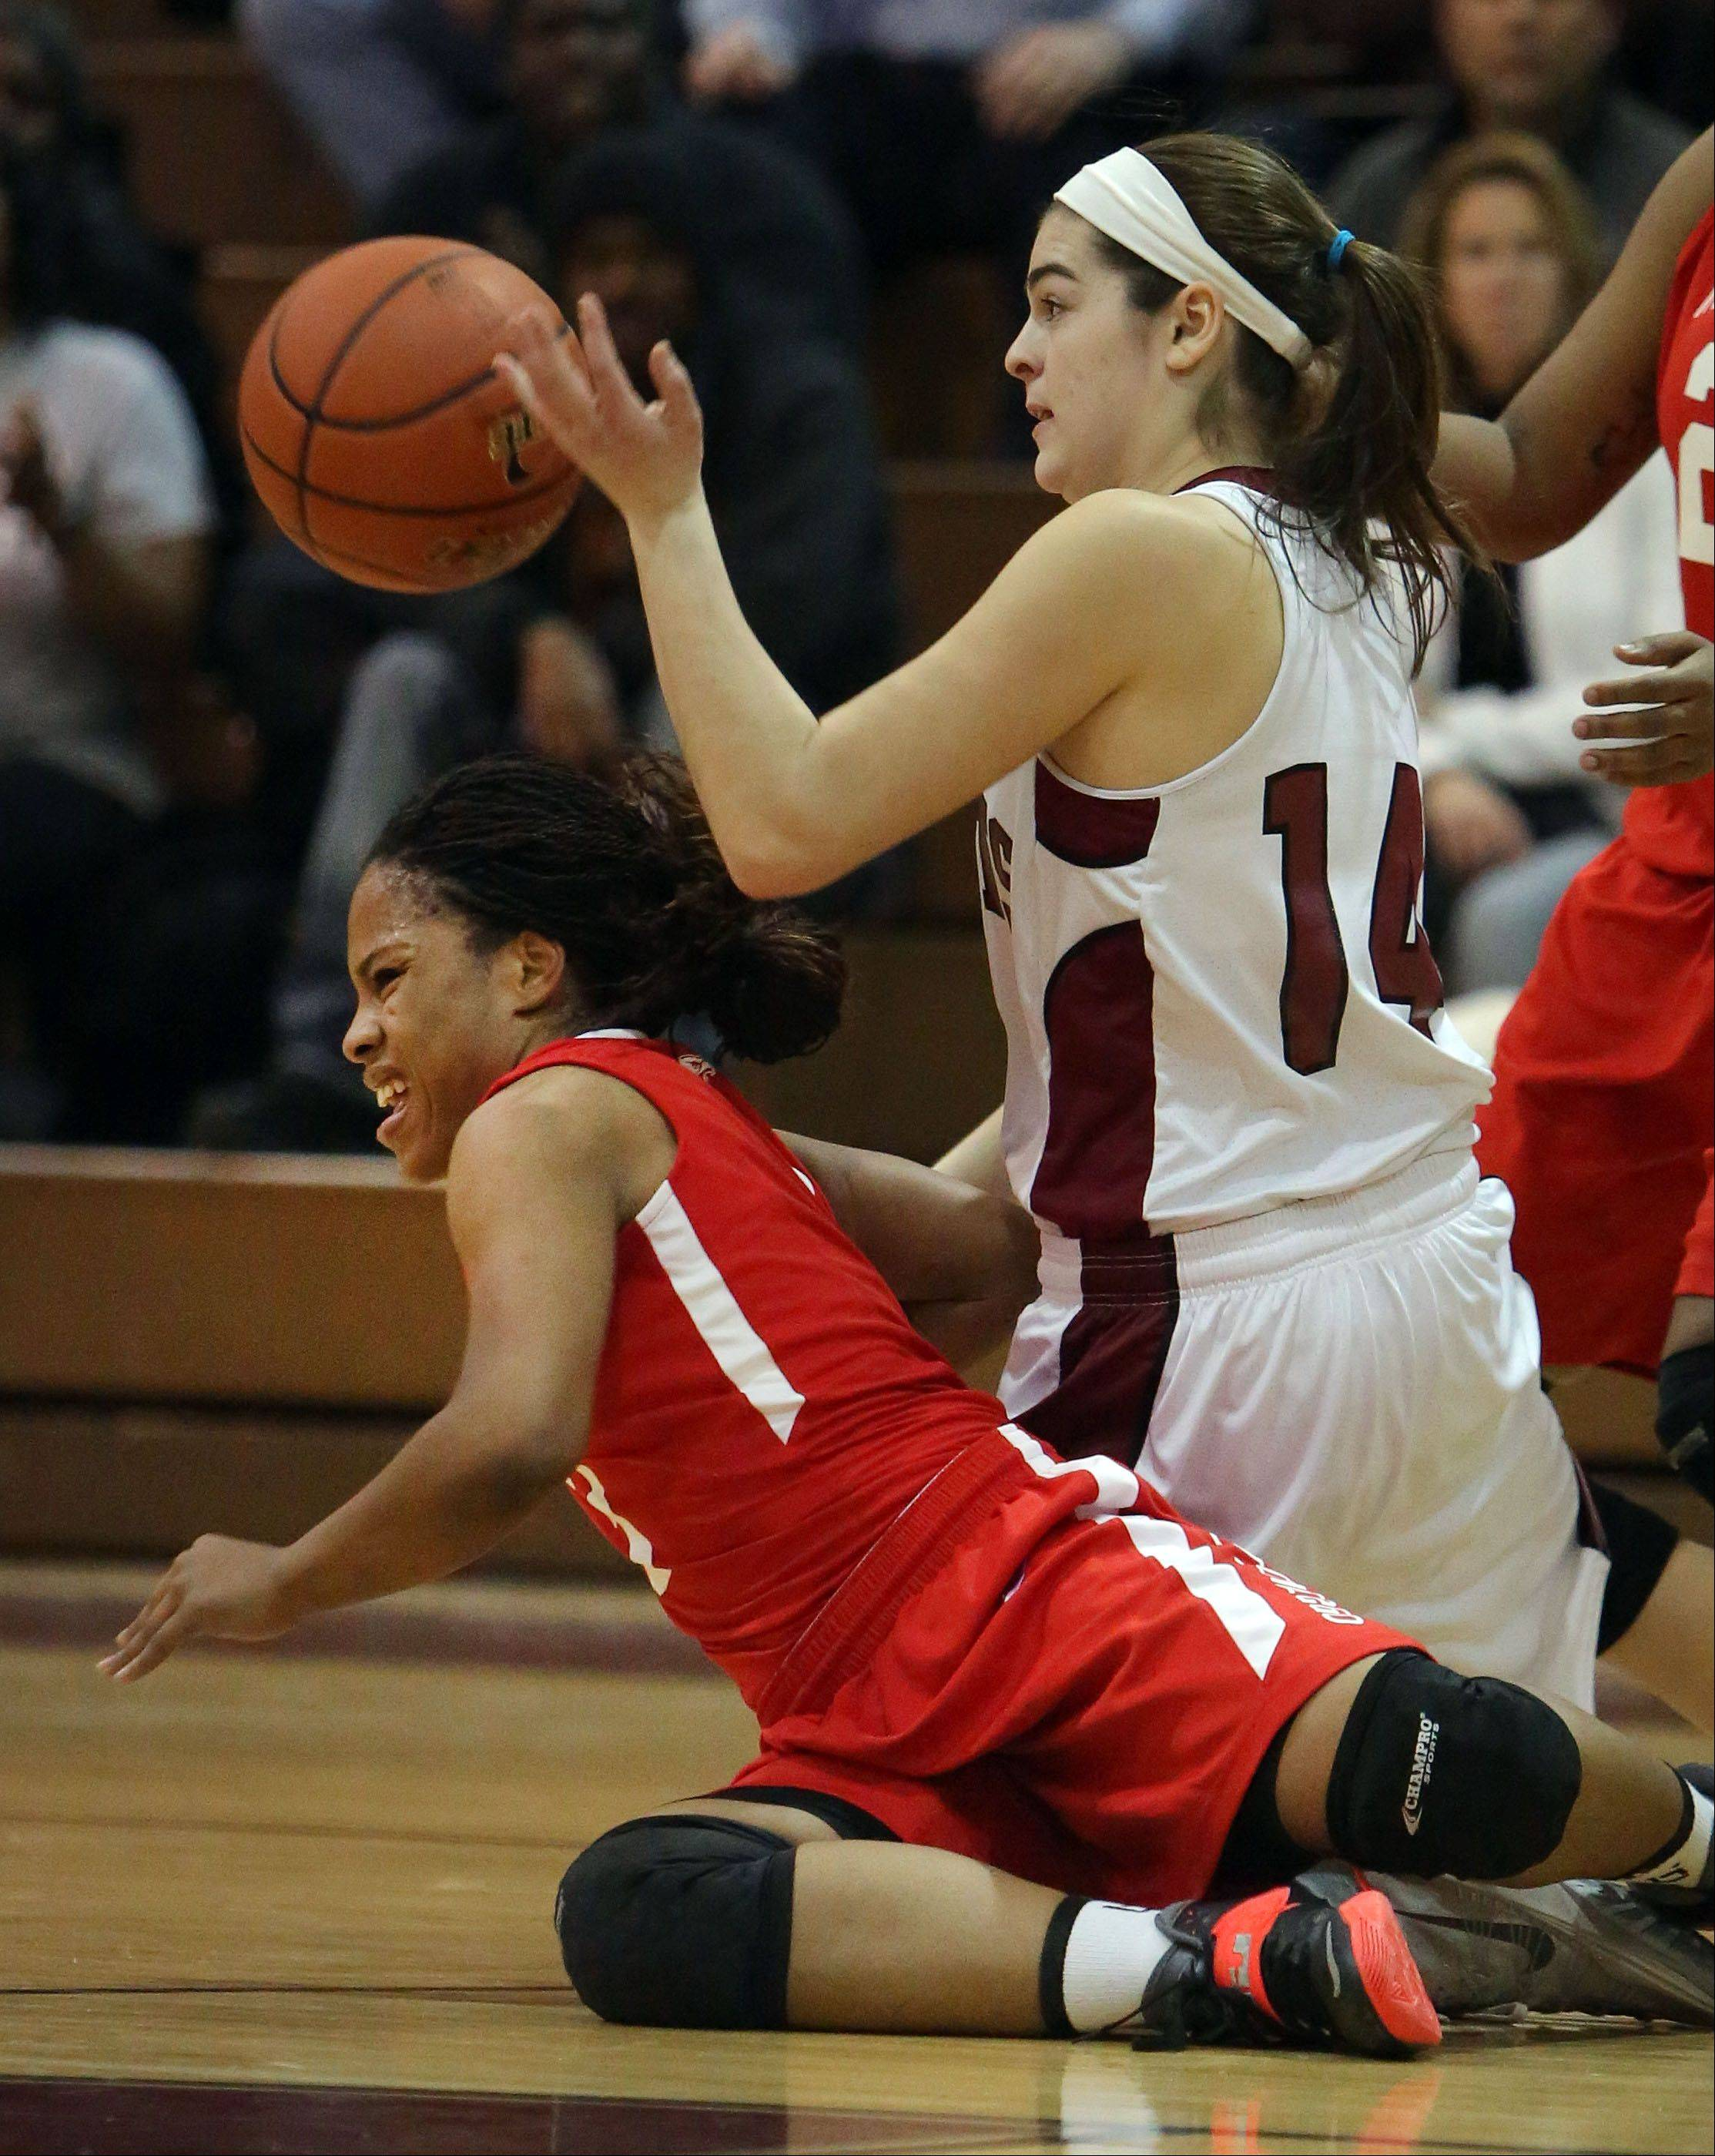 Antioch's Amy Reiser, right, and North Chicago's Alexis Means scramble for a loose ball during Wednesday's game in Antioch.